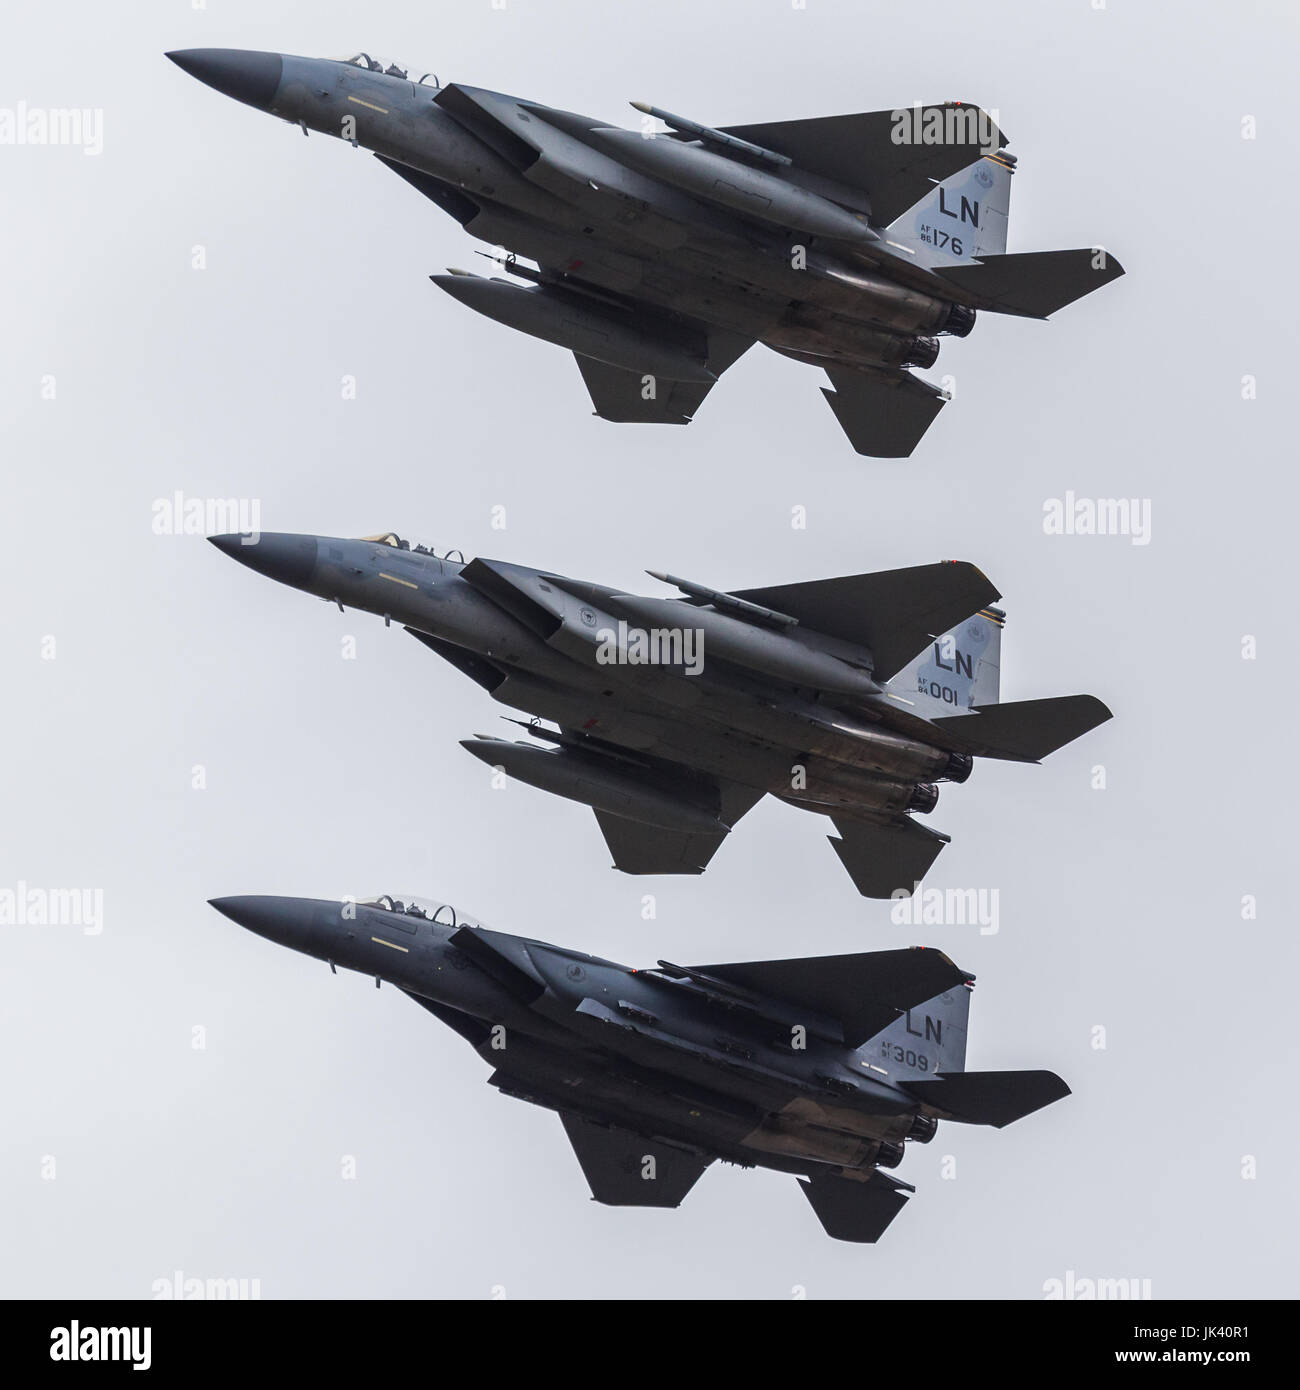 A pair of USAF F-15C Eagles seen flying in tight formation with an F-15E Strike Eagle during the 2017 Royal International Stock Photo